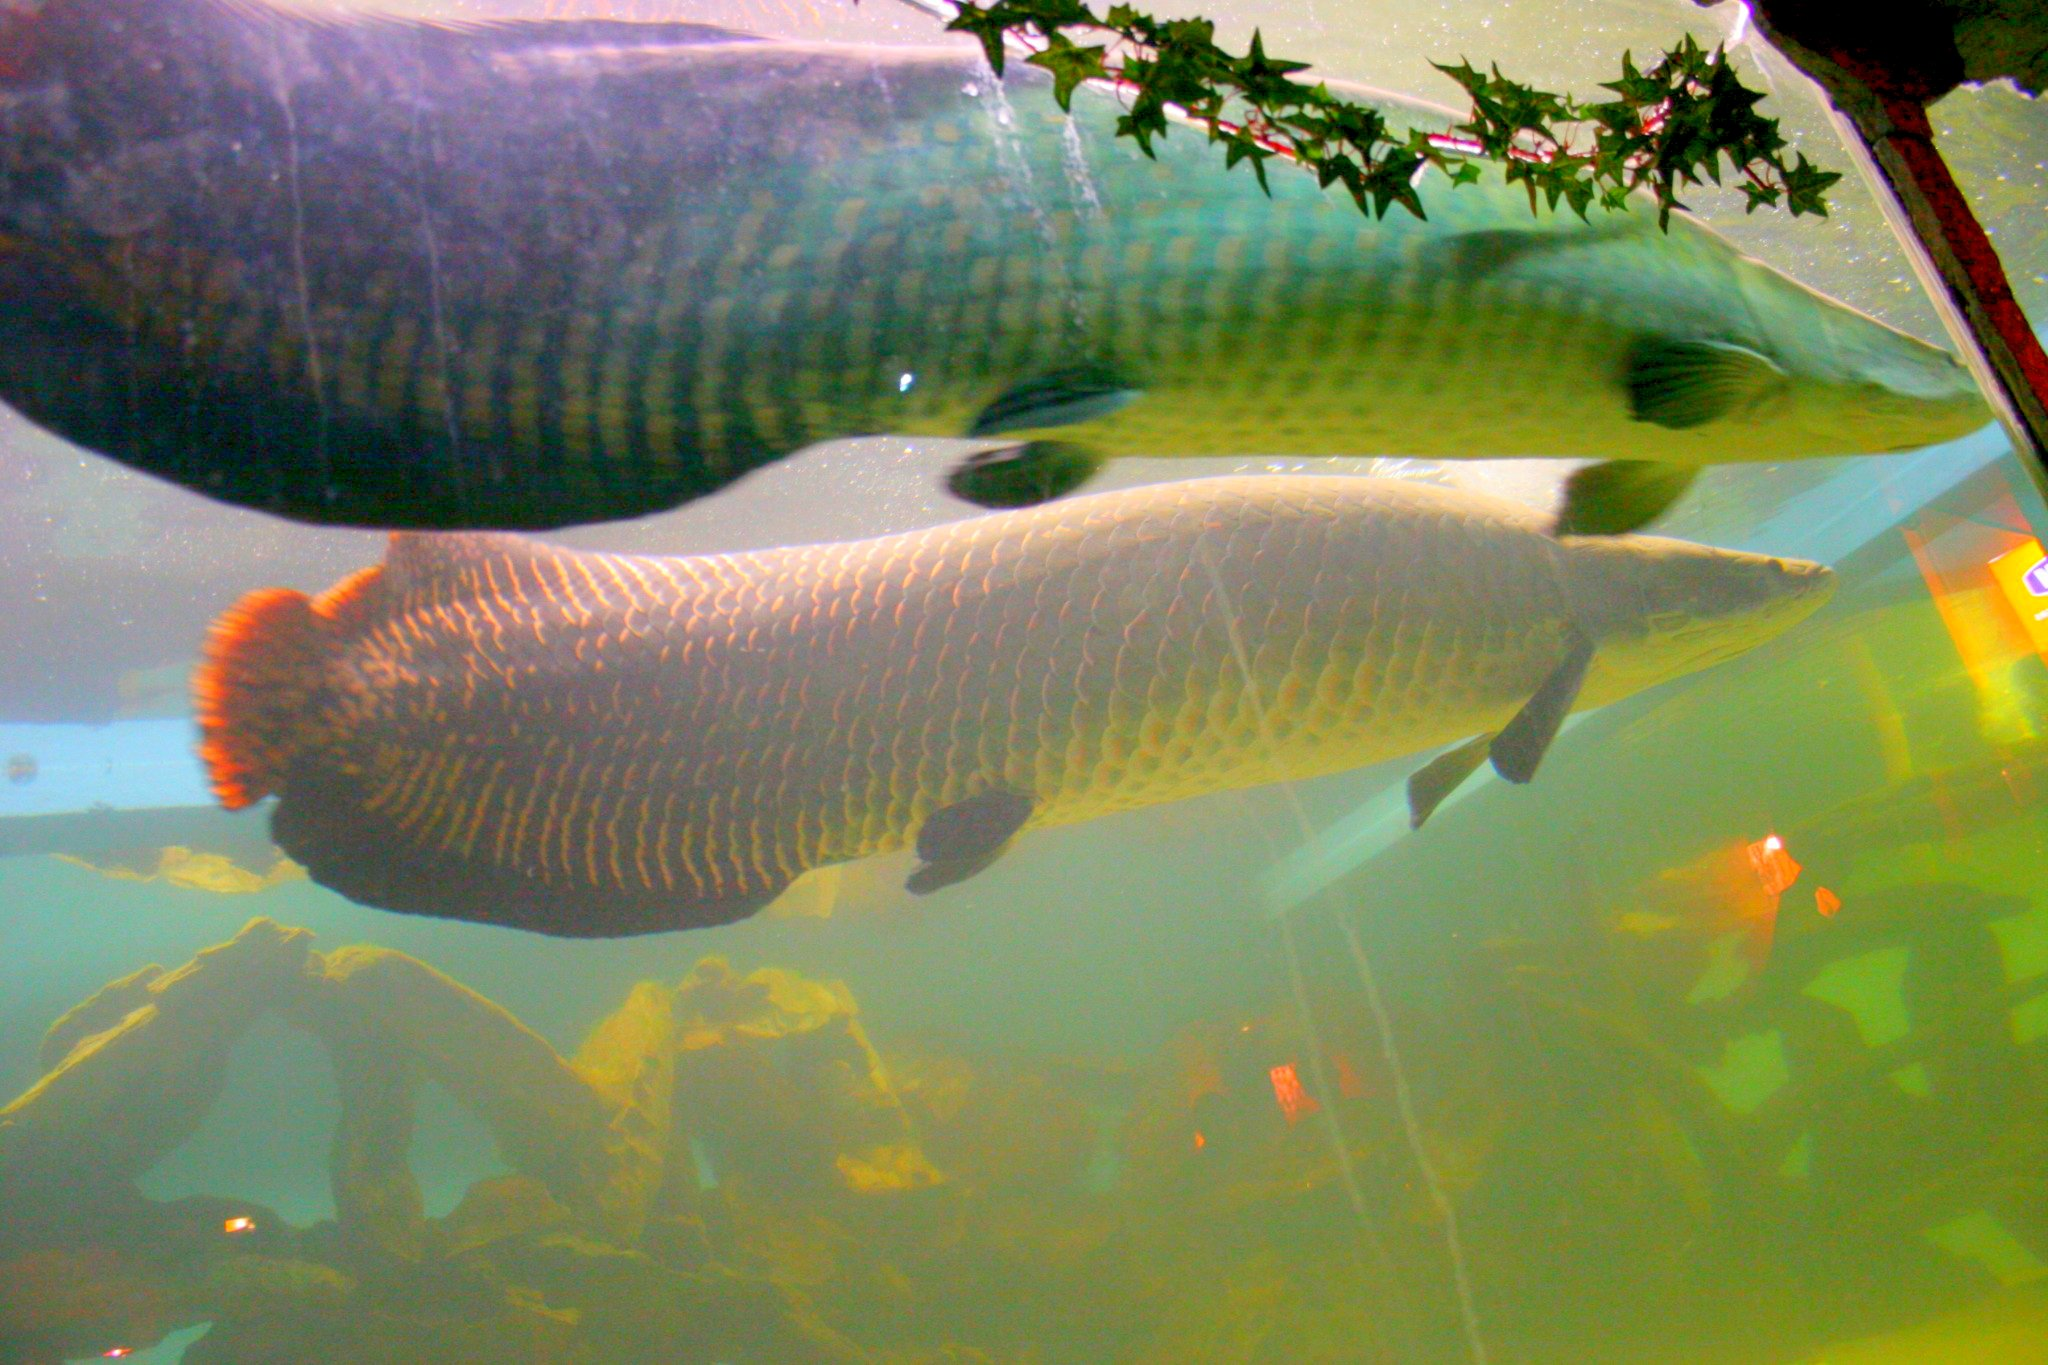 What Is the Largest Freshwater Fish